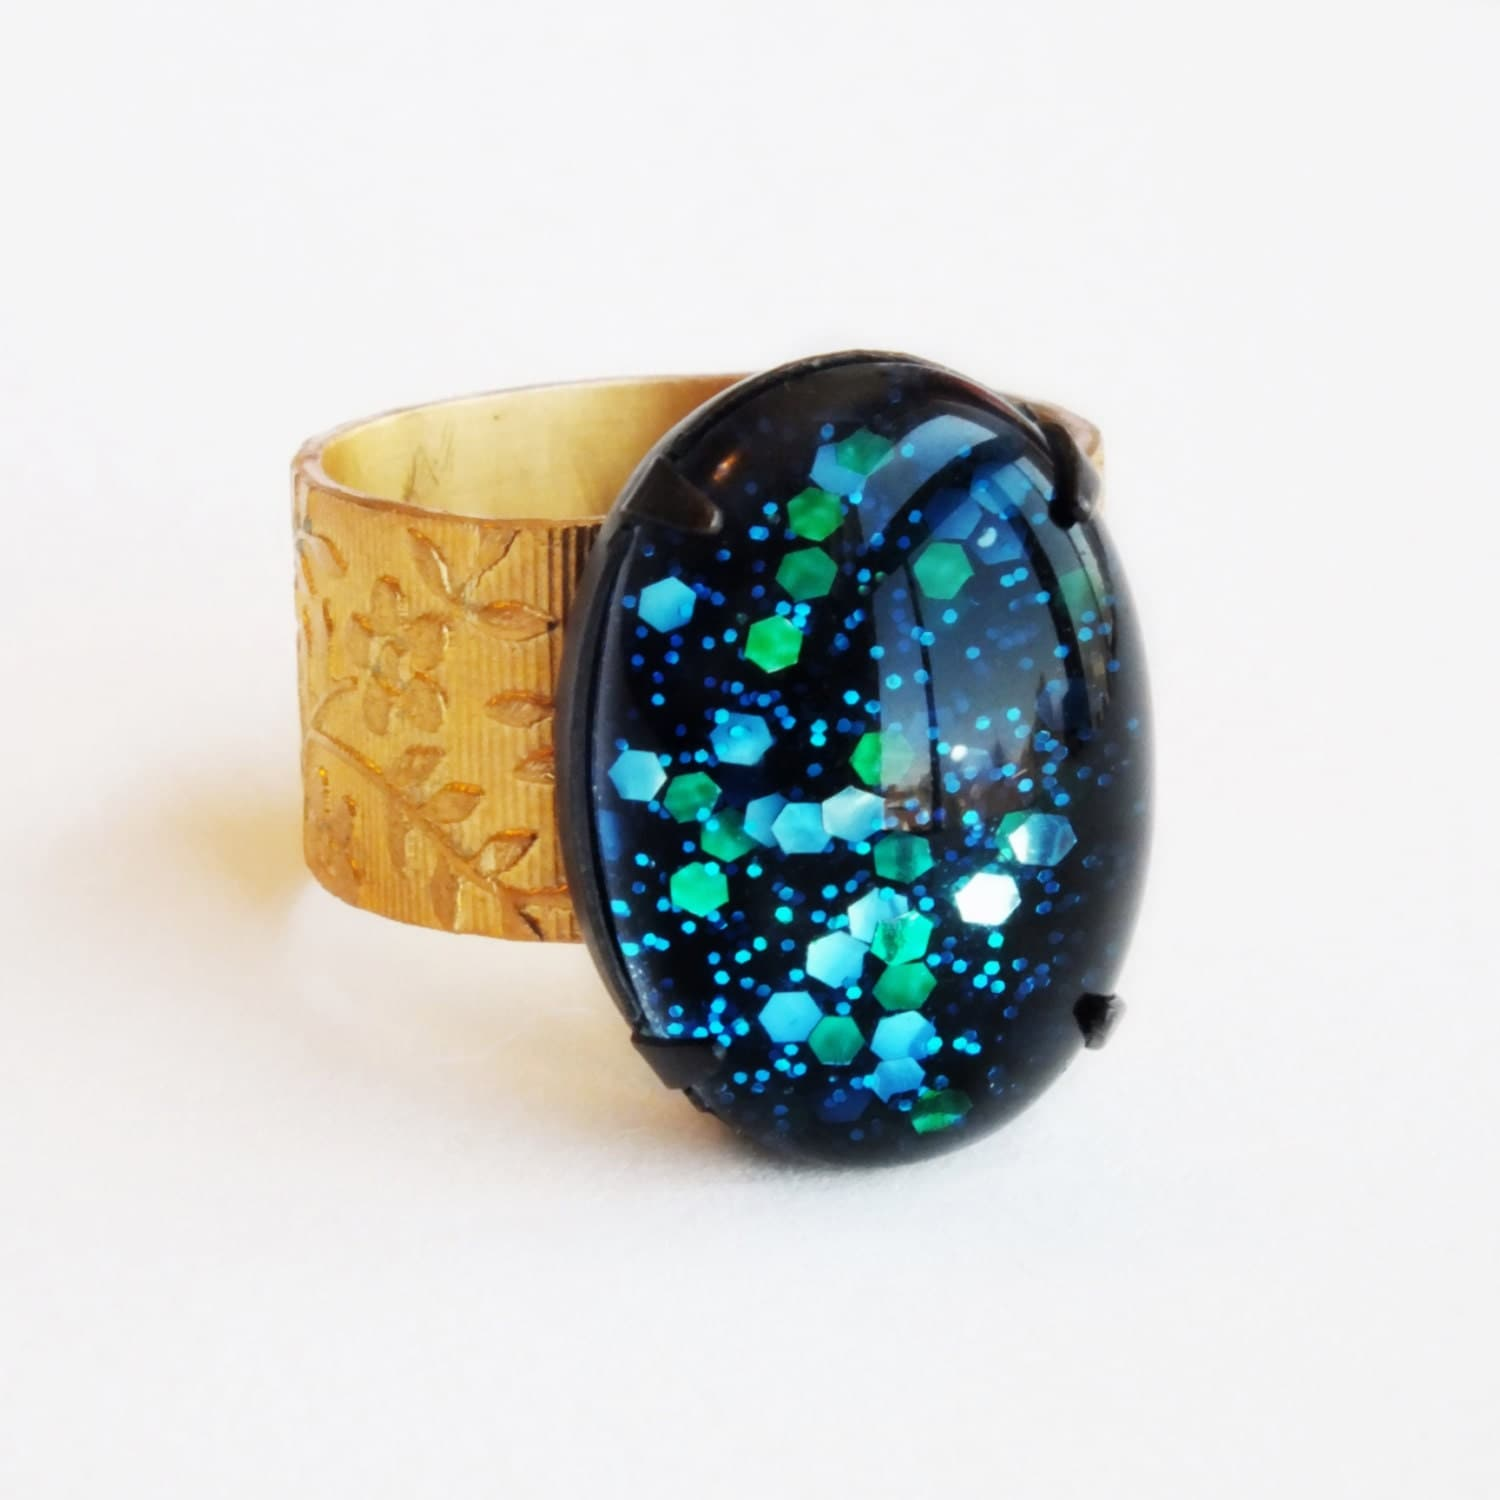 Nail Polish Ring Blue Green Glitter Ring Cosmic Vintage Domed